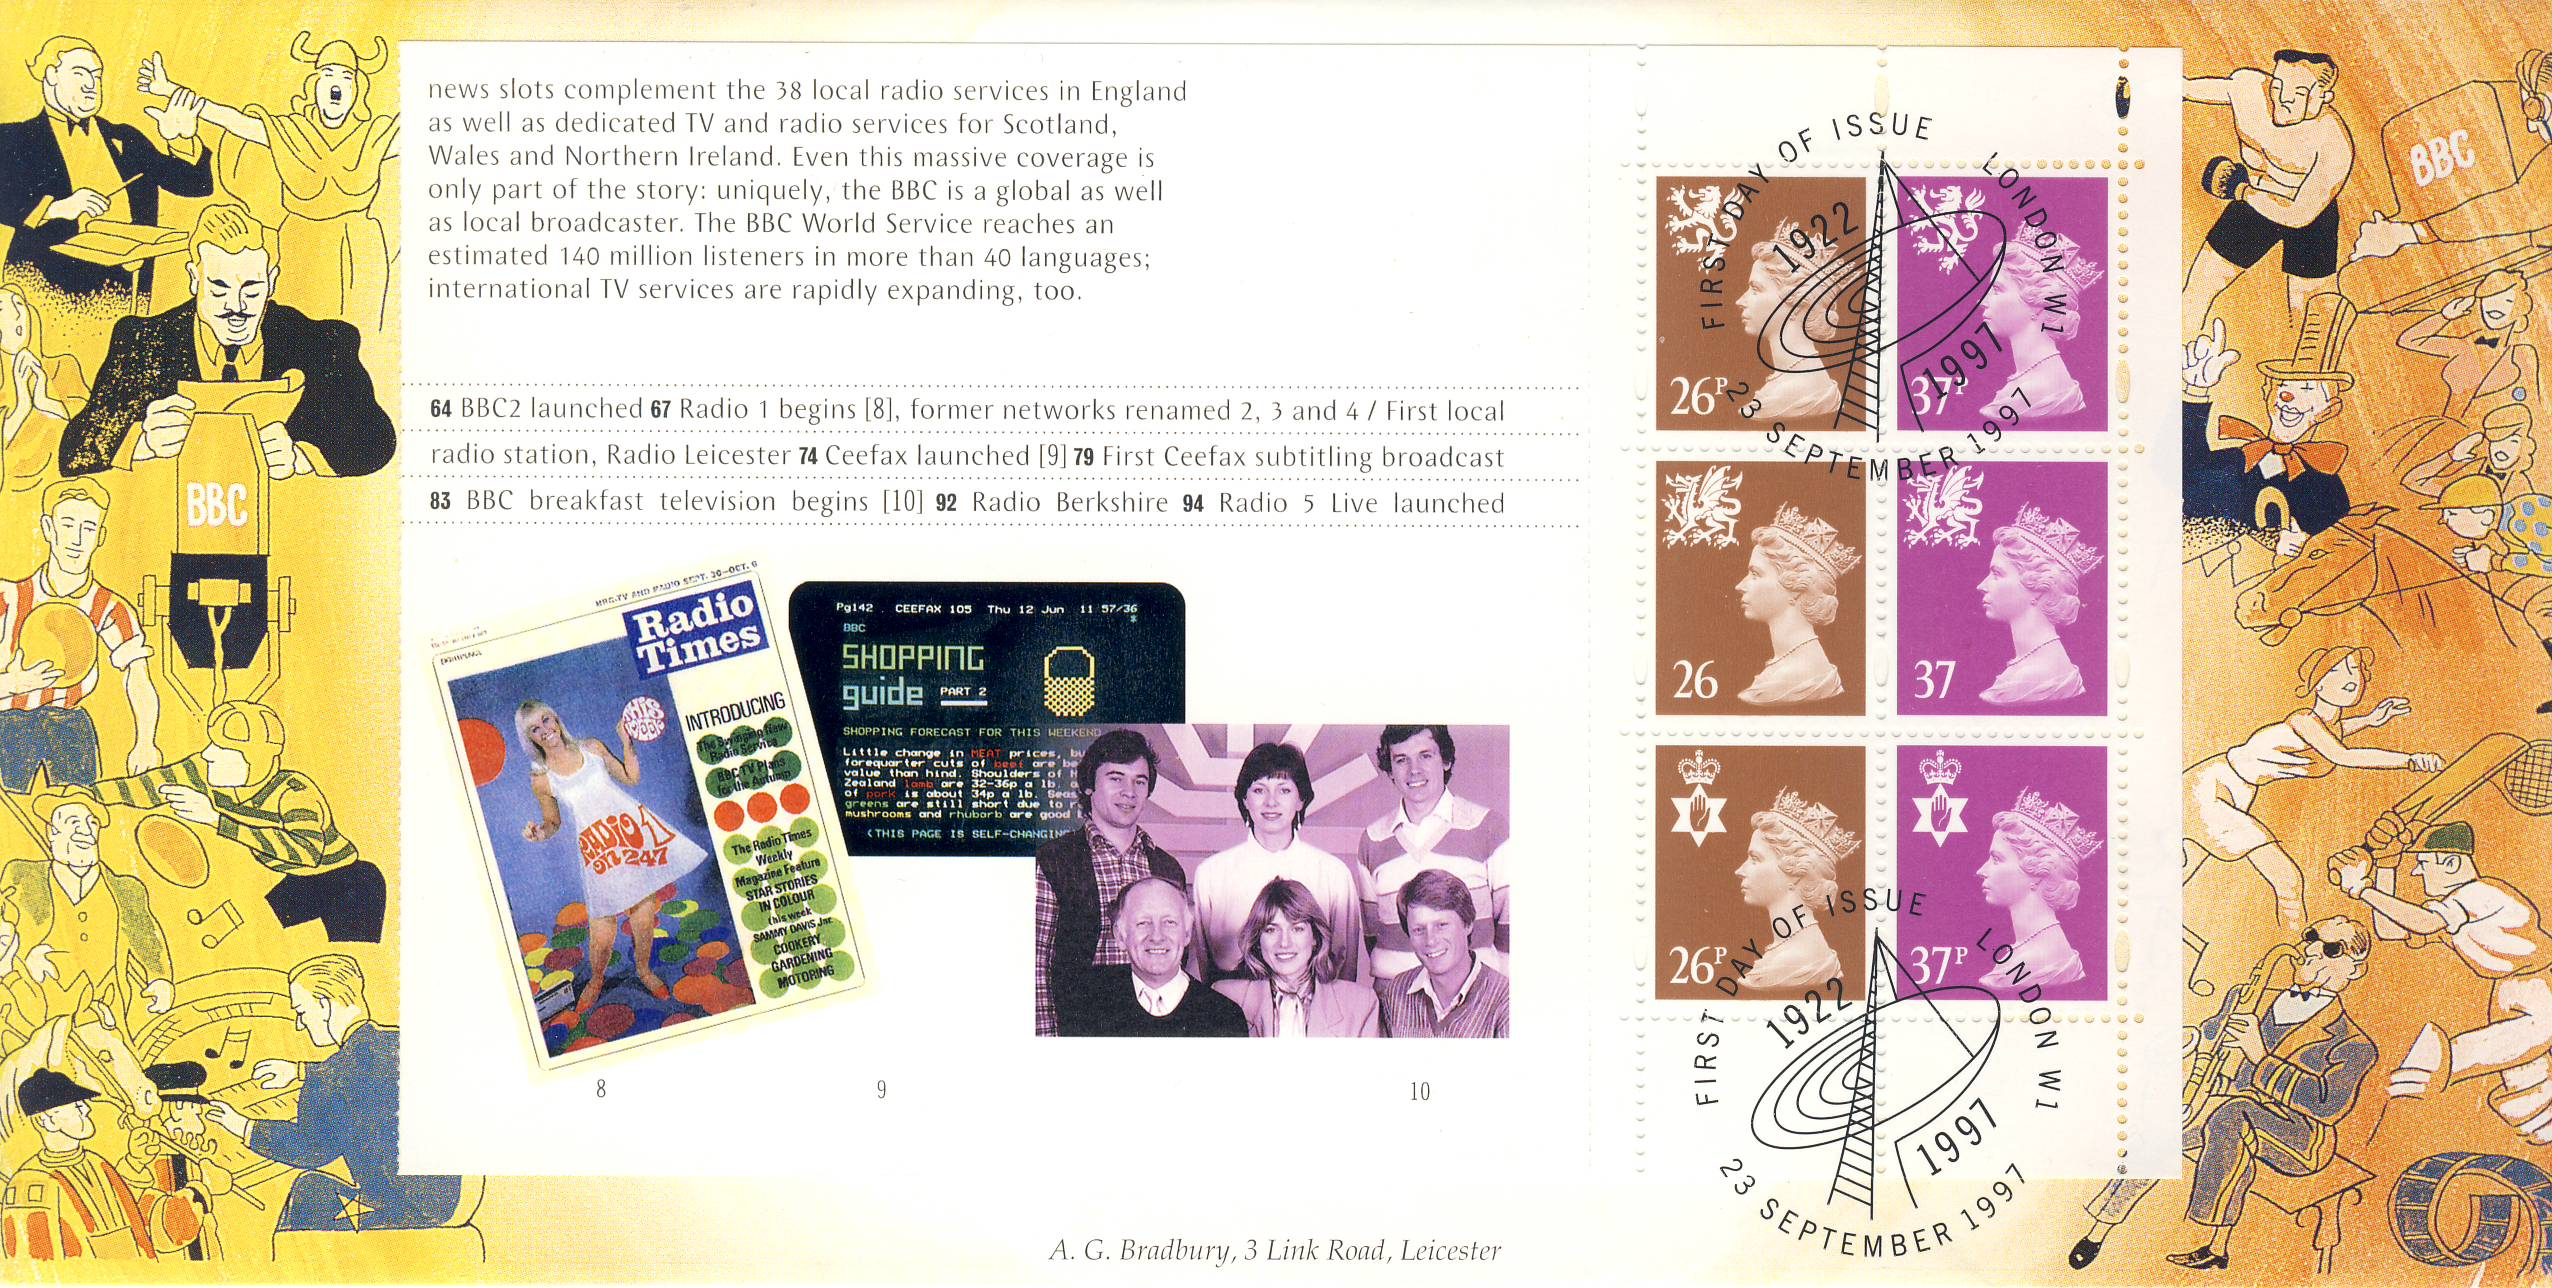 1997 BBC Radio Times CEEFAX Breakfast television begins Limited Edition cover FDC postmark London W1 1992-1997 23 September. This is a limited edition Bradbury cover numbered 178 of 250 .  Very good condition.